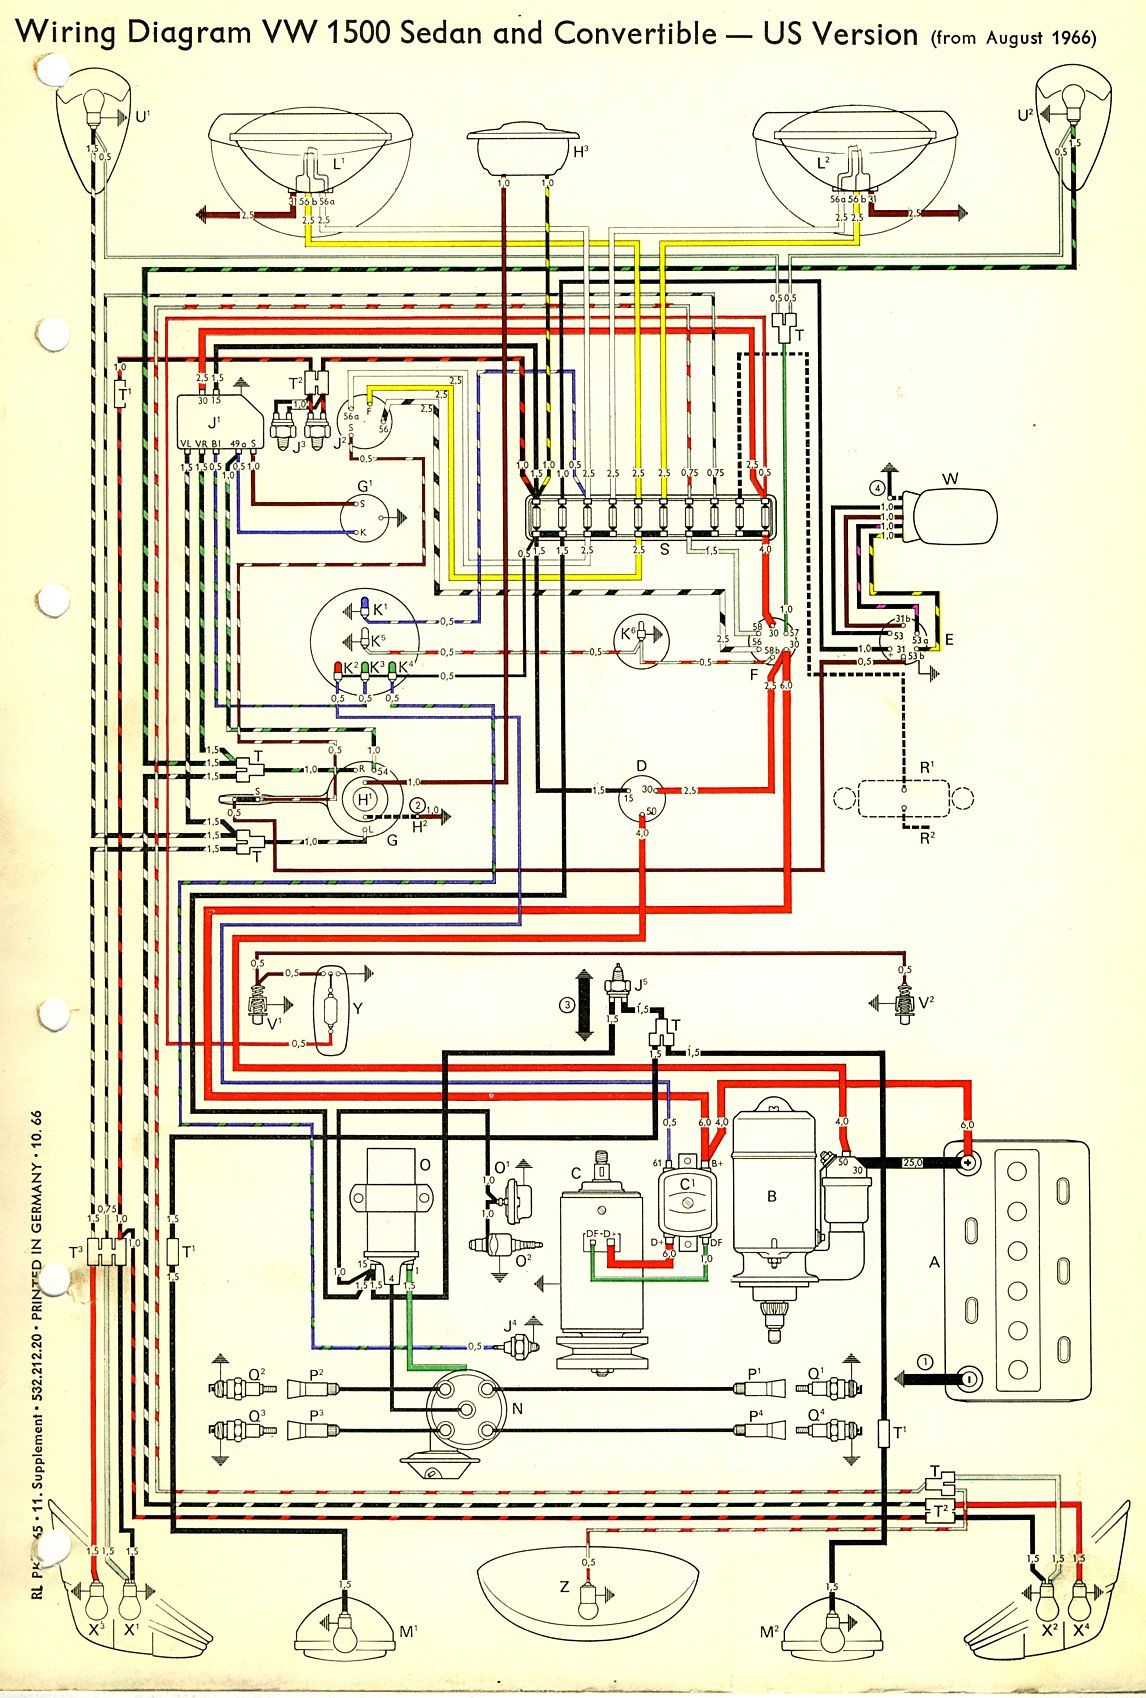 1adf990c0efb617c789fdd21338448b0 1967 vw radio wiring diagram 1967 wiring diagrams VW Kit Car Wiring Diagram at n-0.co